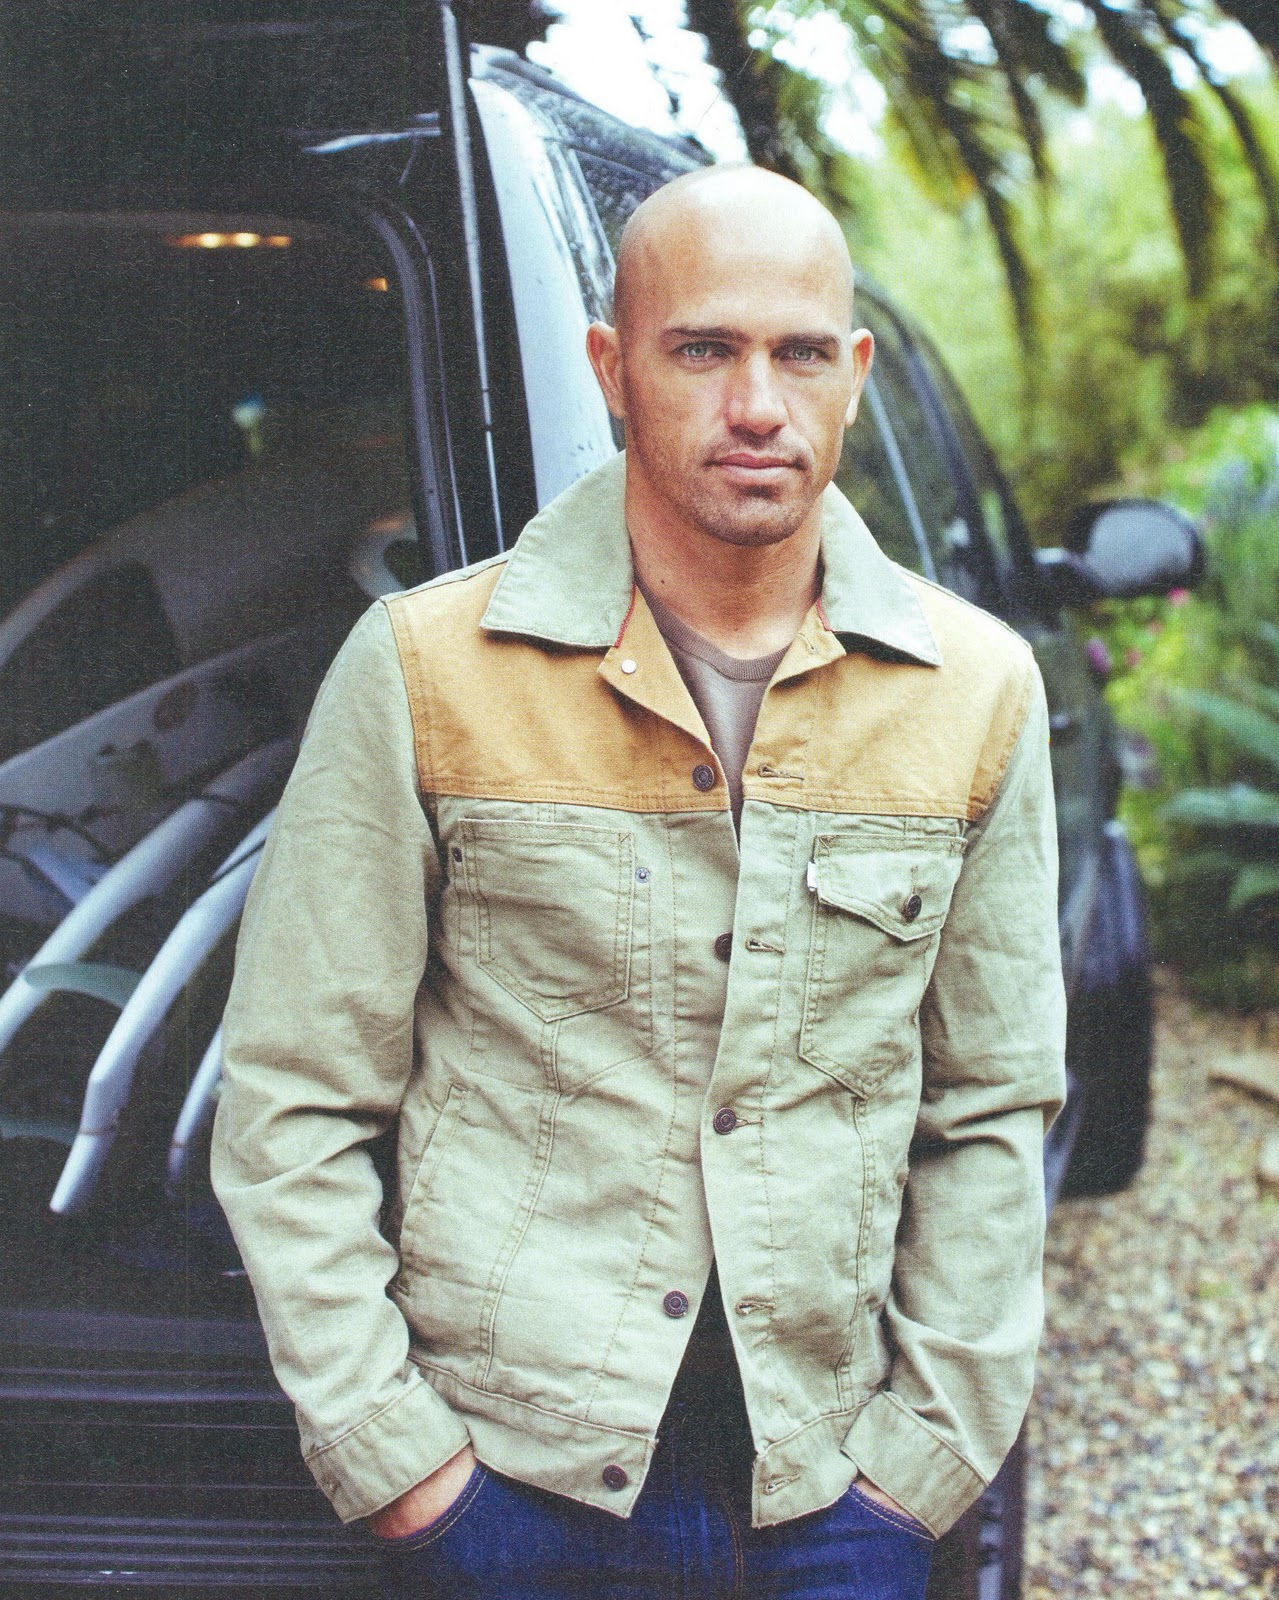 Quiksilver Pr Kelly Slater In The Telegraph